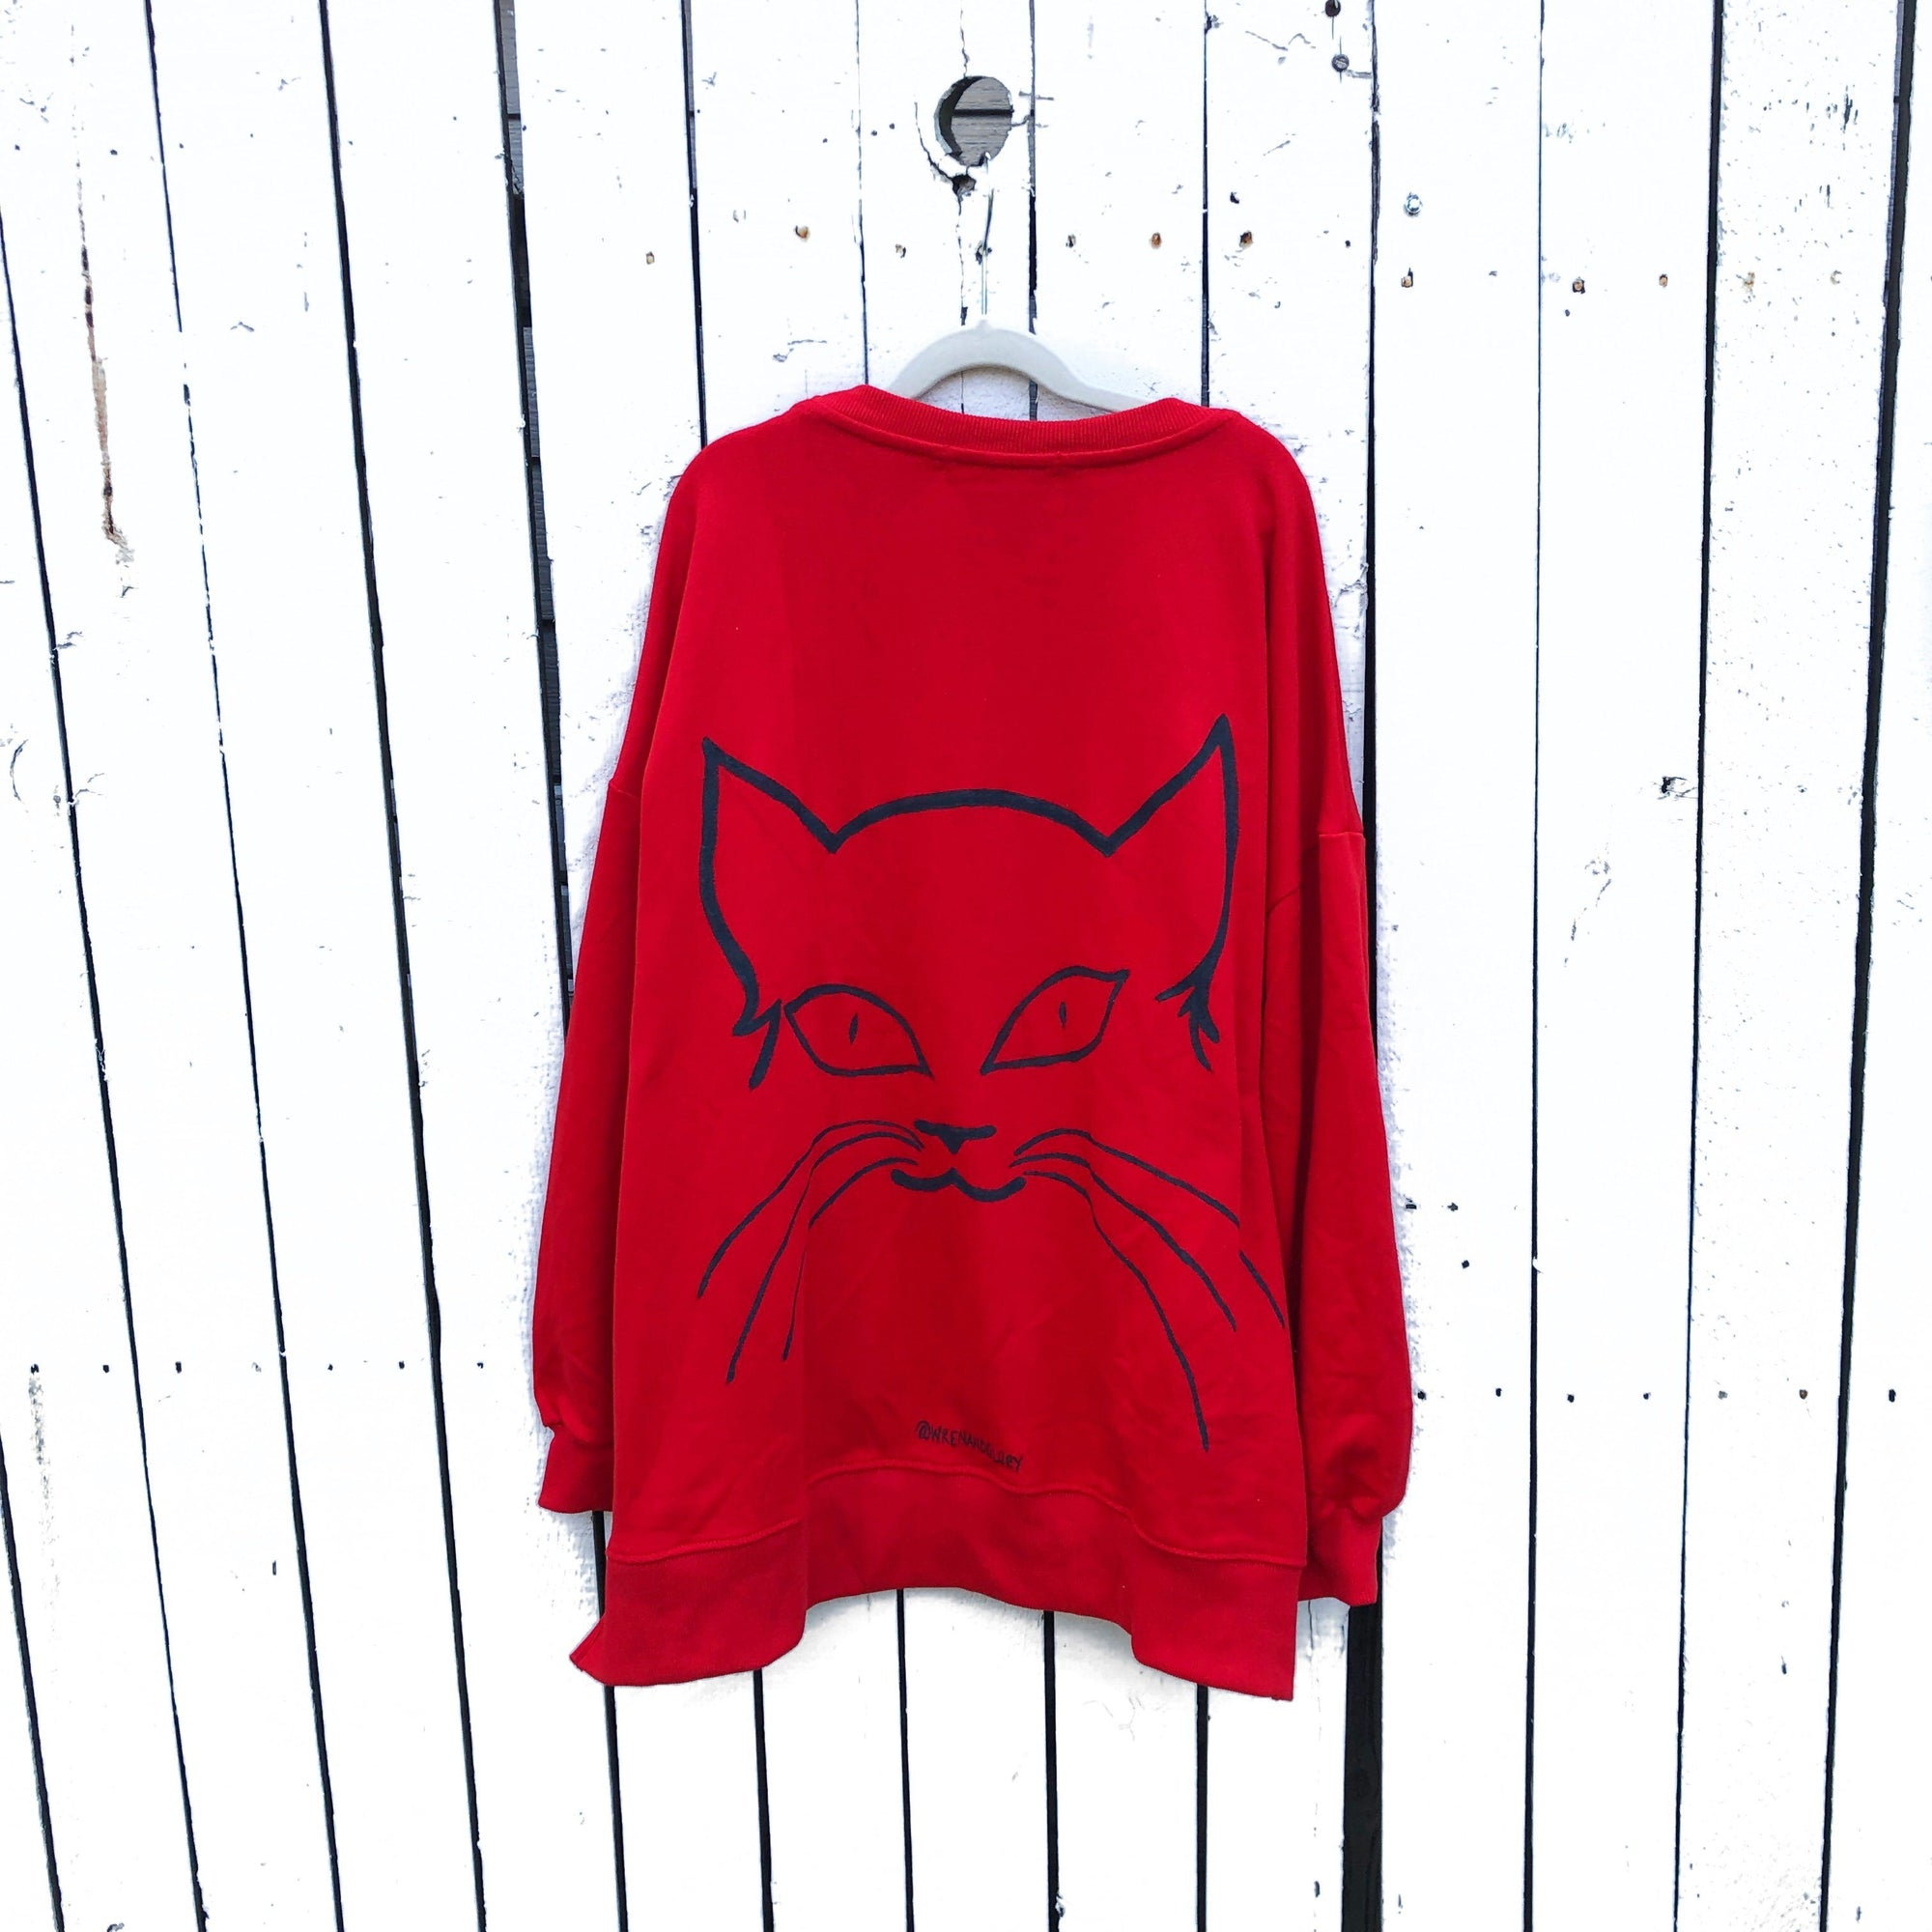 'IM A CAT' SWEATSHIRT